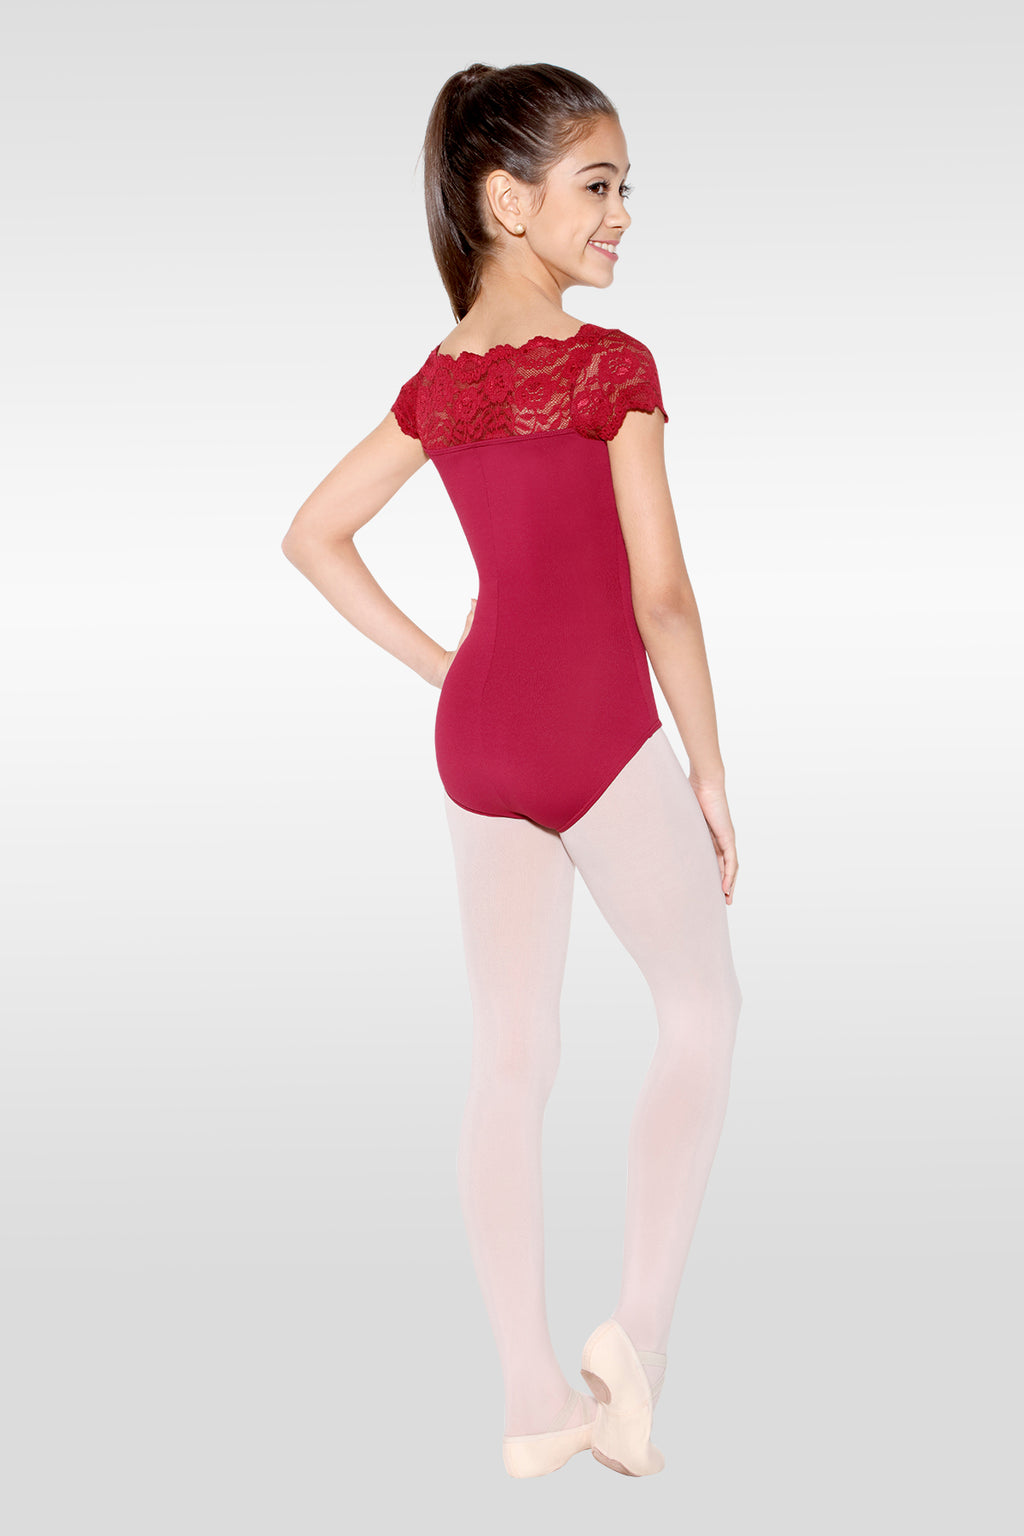 Lace Boatneck Leotard - Child